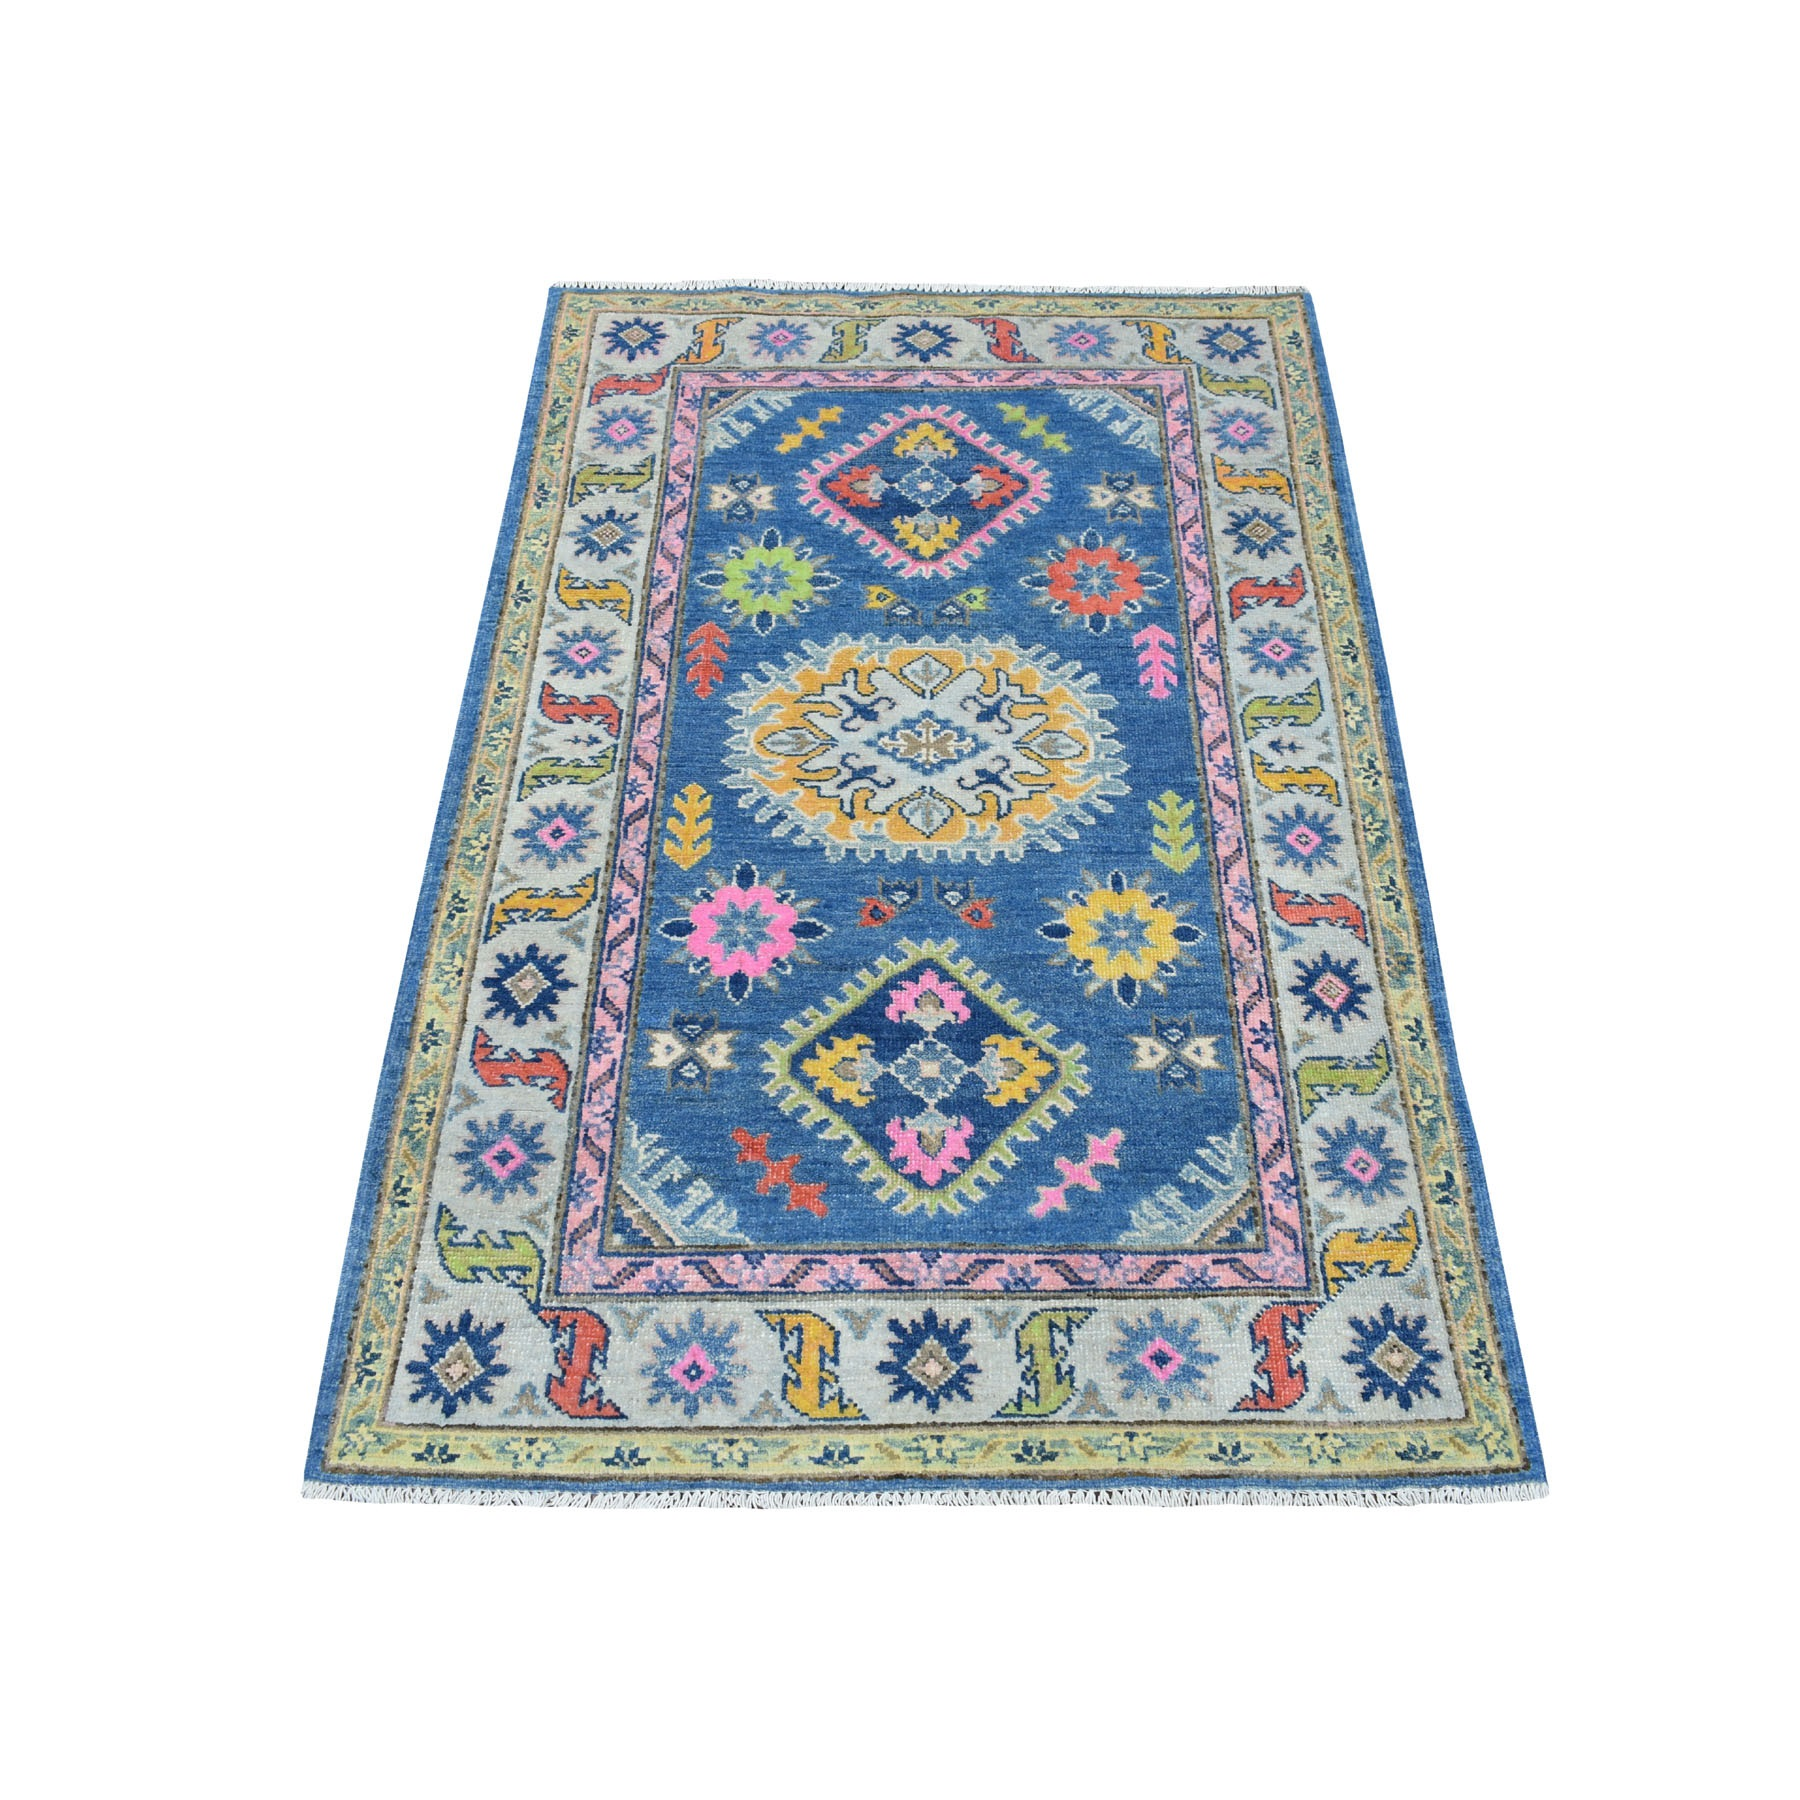 "3'3""x5' Colorful Blue Fusion Kazak Pure Wool Geometric Design Hand Woven Oriental Rug"